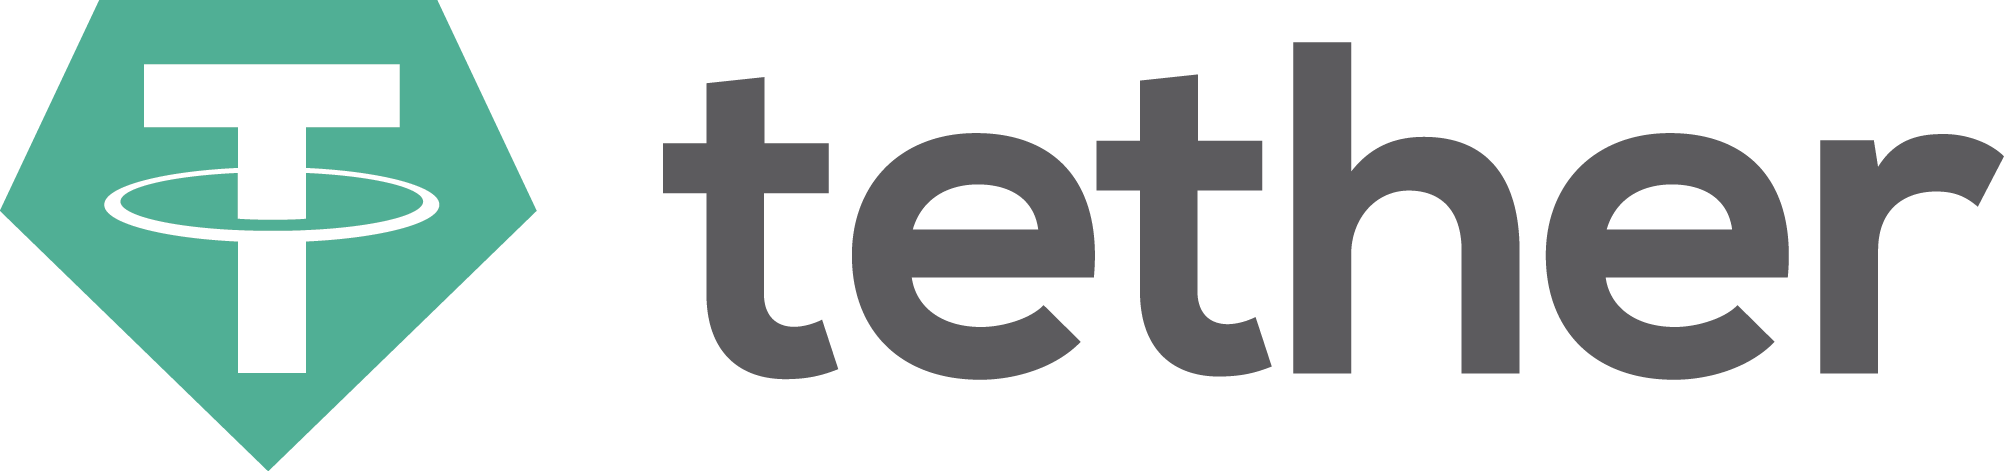 what is tether USDT?